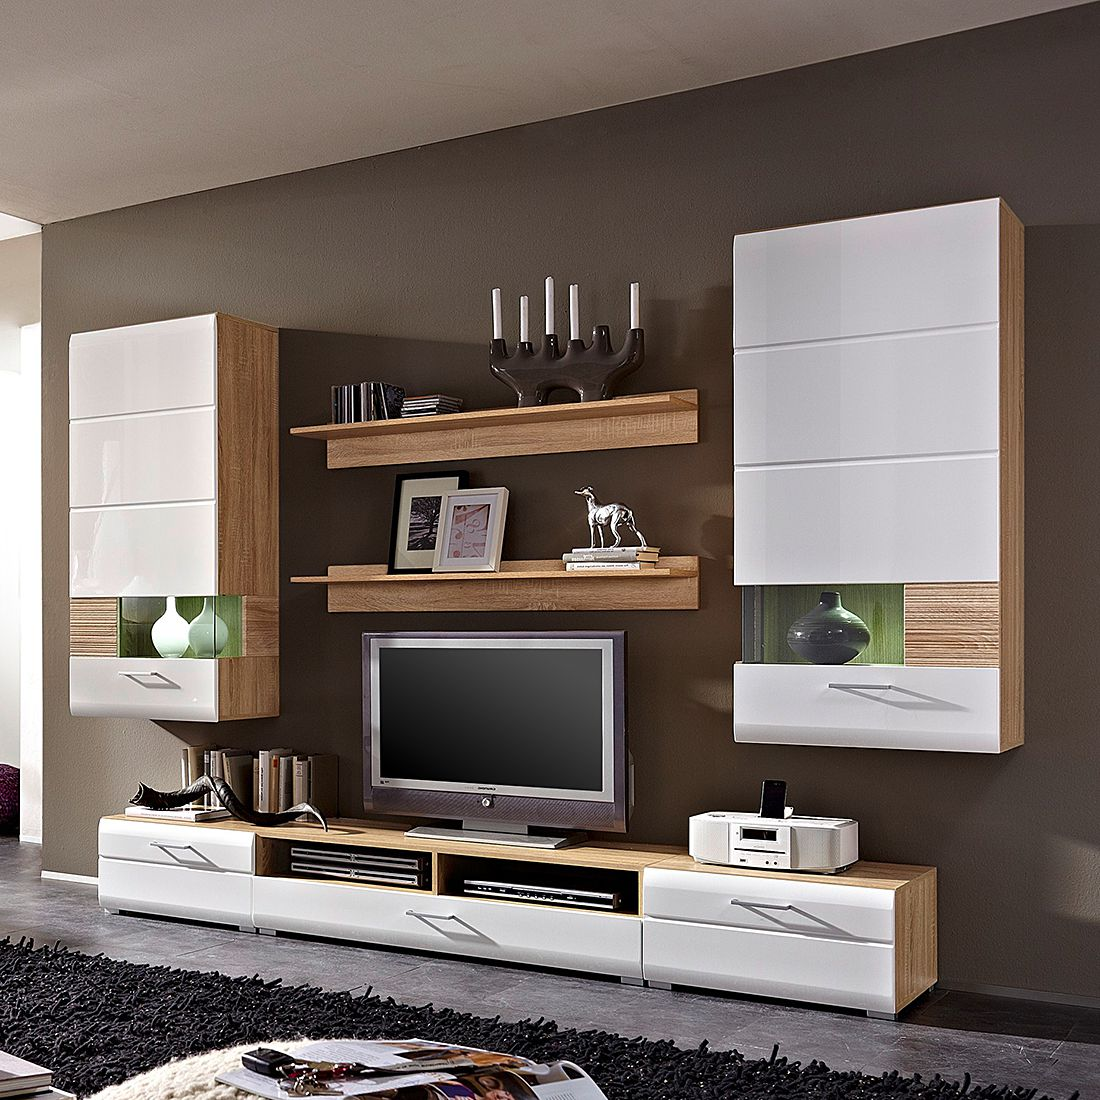 wohnwand avida i 7 teilig sonoma eiche dekor wei. Black Bedroom Furniture Sets. Home Design Ideas